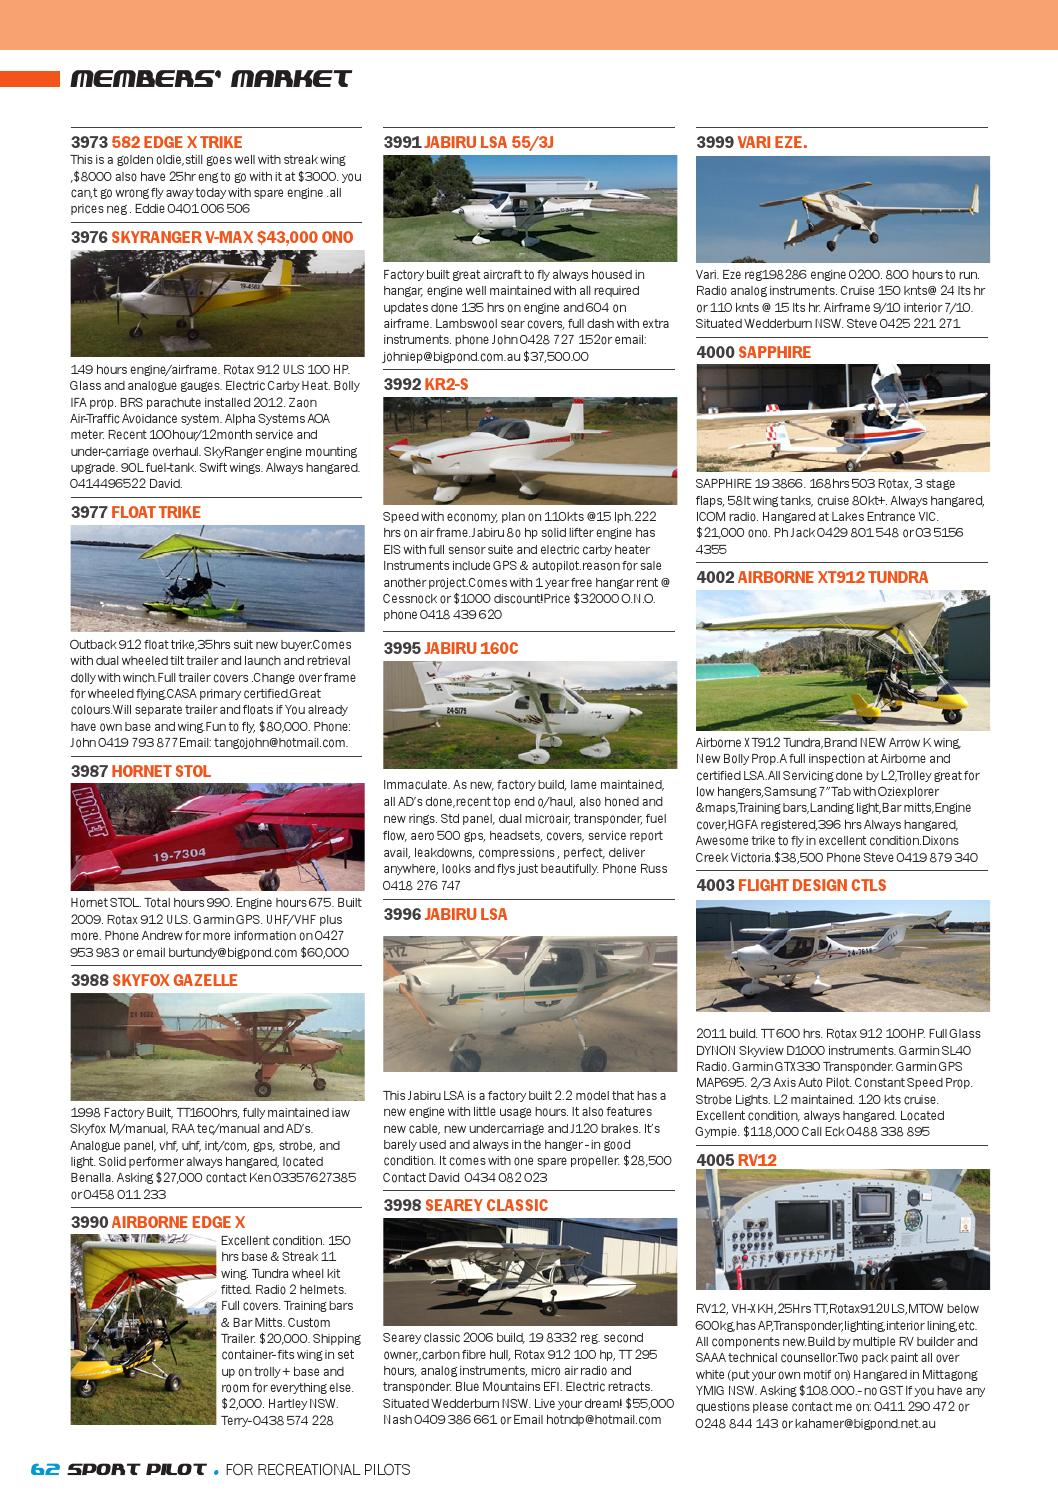 Sport pilot 37 aug 2014 by Recreational Aviation Australia